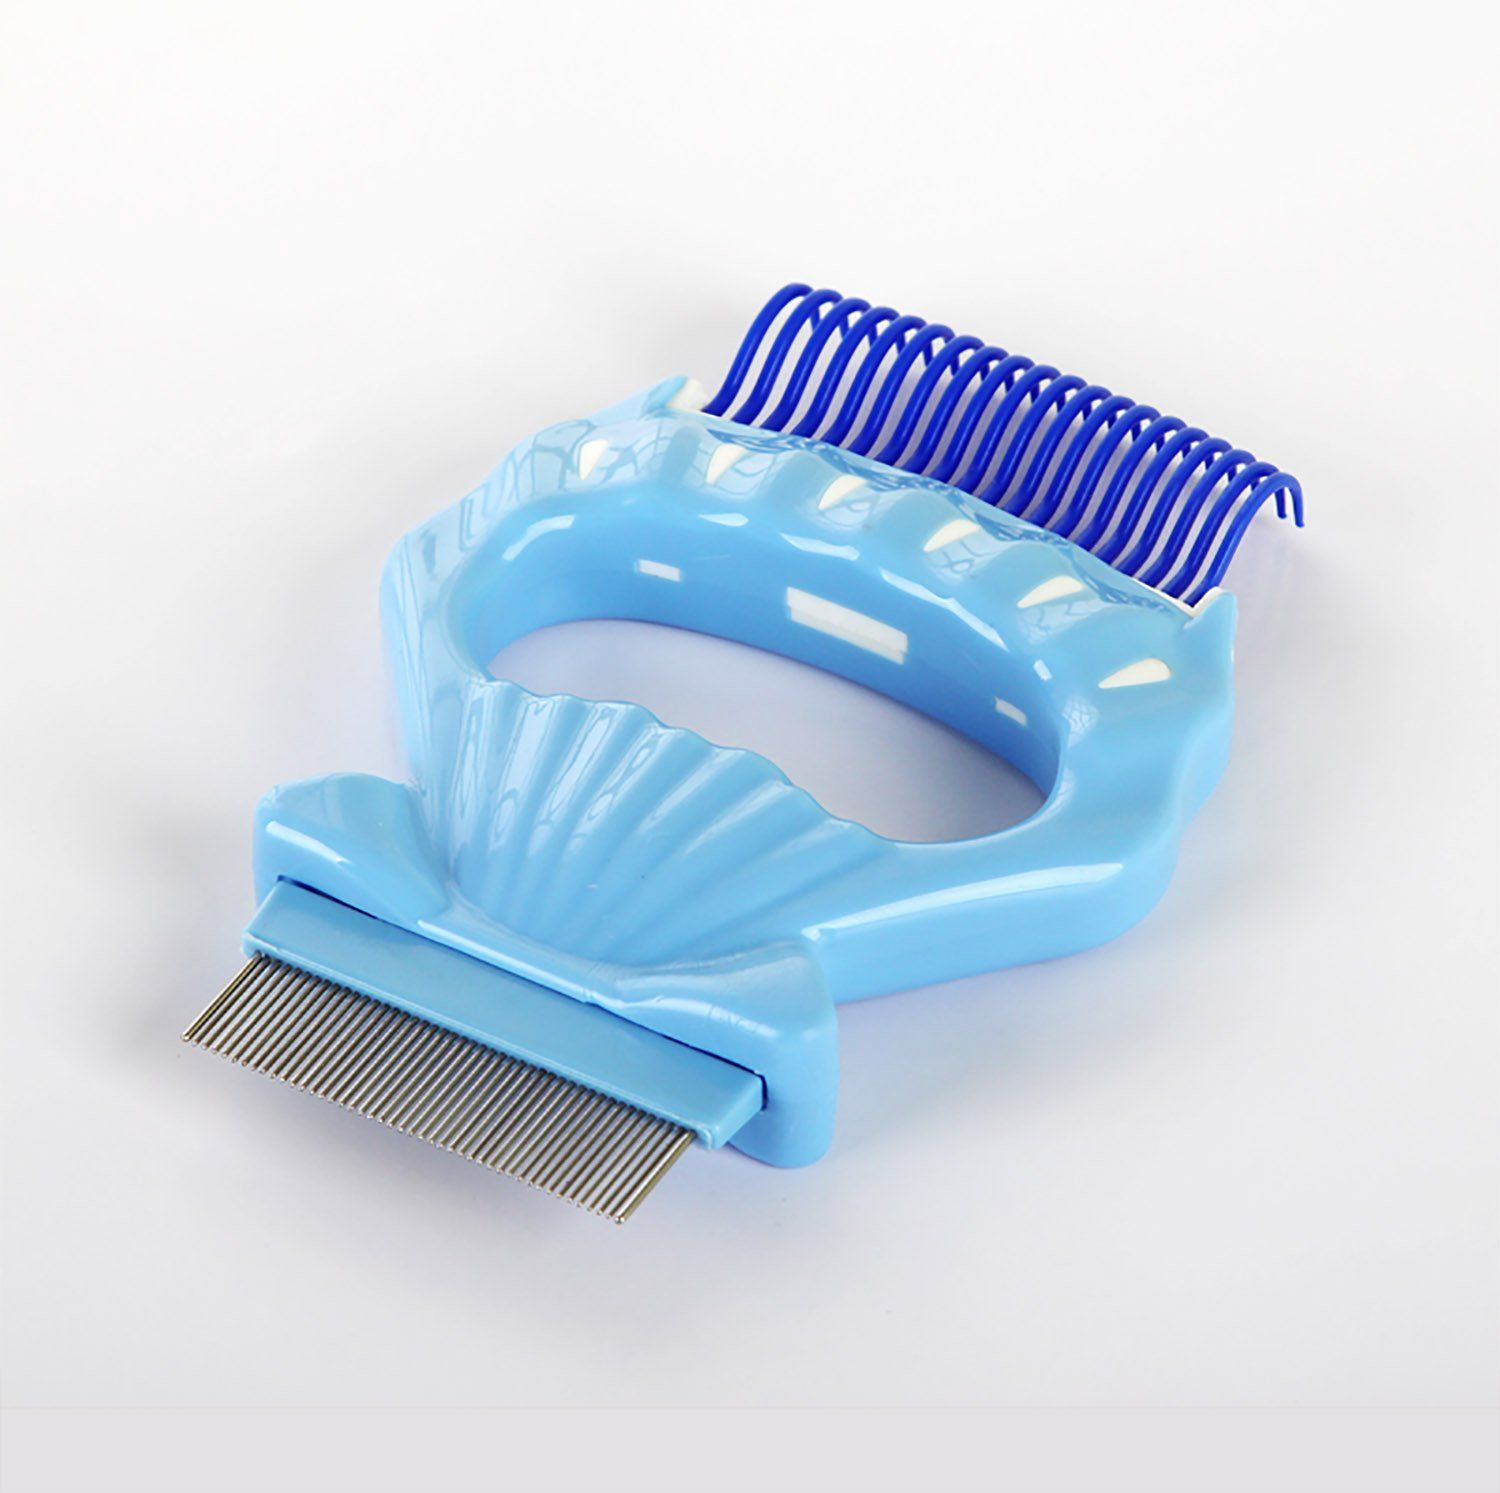 Professional Brush For Dogs Puppy Cats Rabbits Pet Grooming Brush Removes Mats Tangles Comb For Dematting And Cl Dog Grooming Dog Teeth Cleaning Cat Grooming